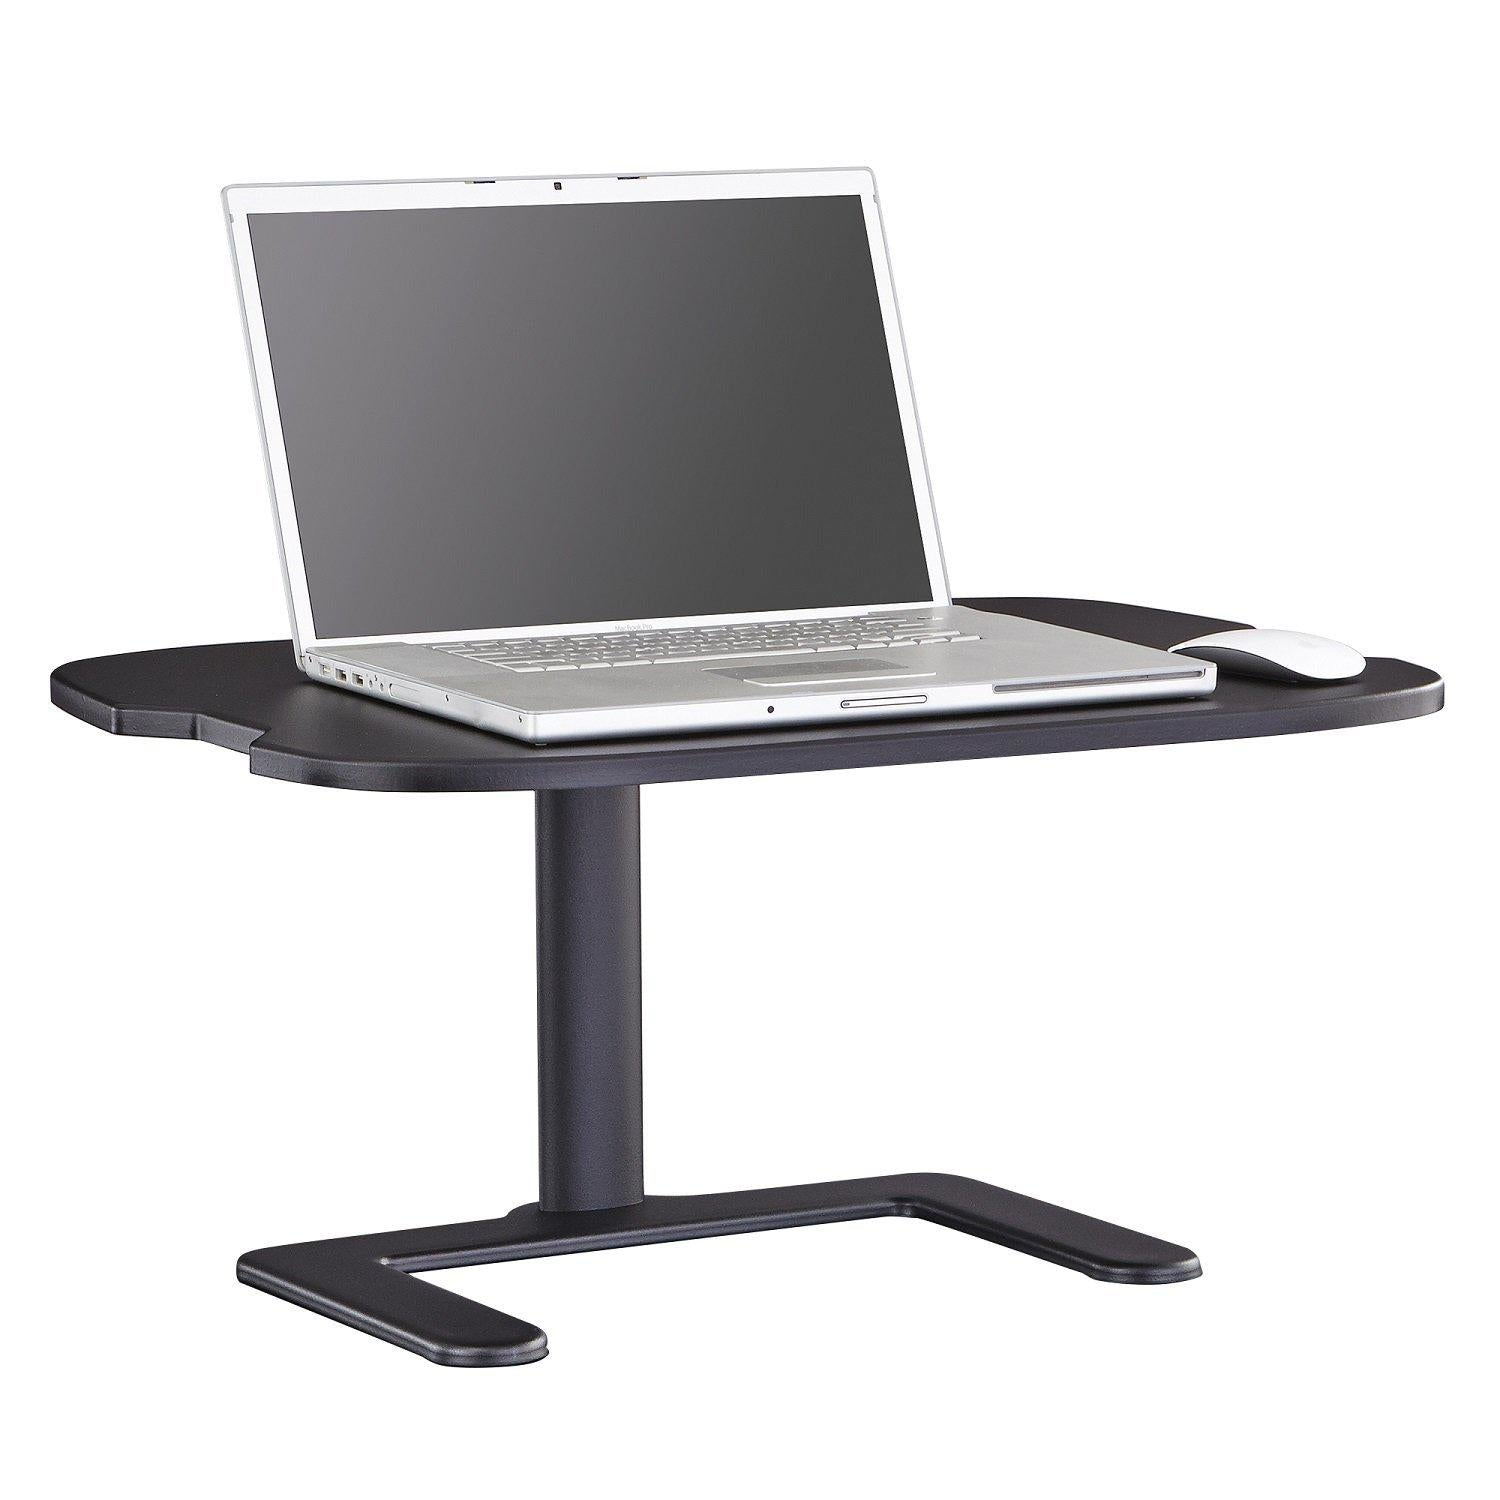 Stance™ Height-Adjustable Laptop Stand